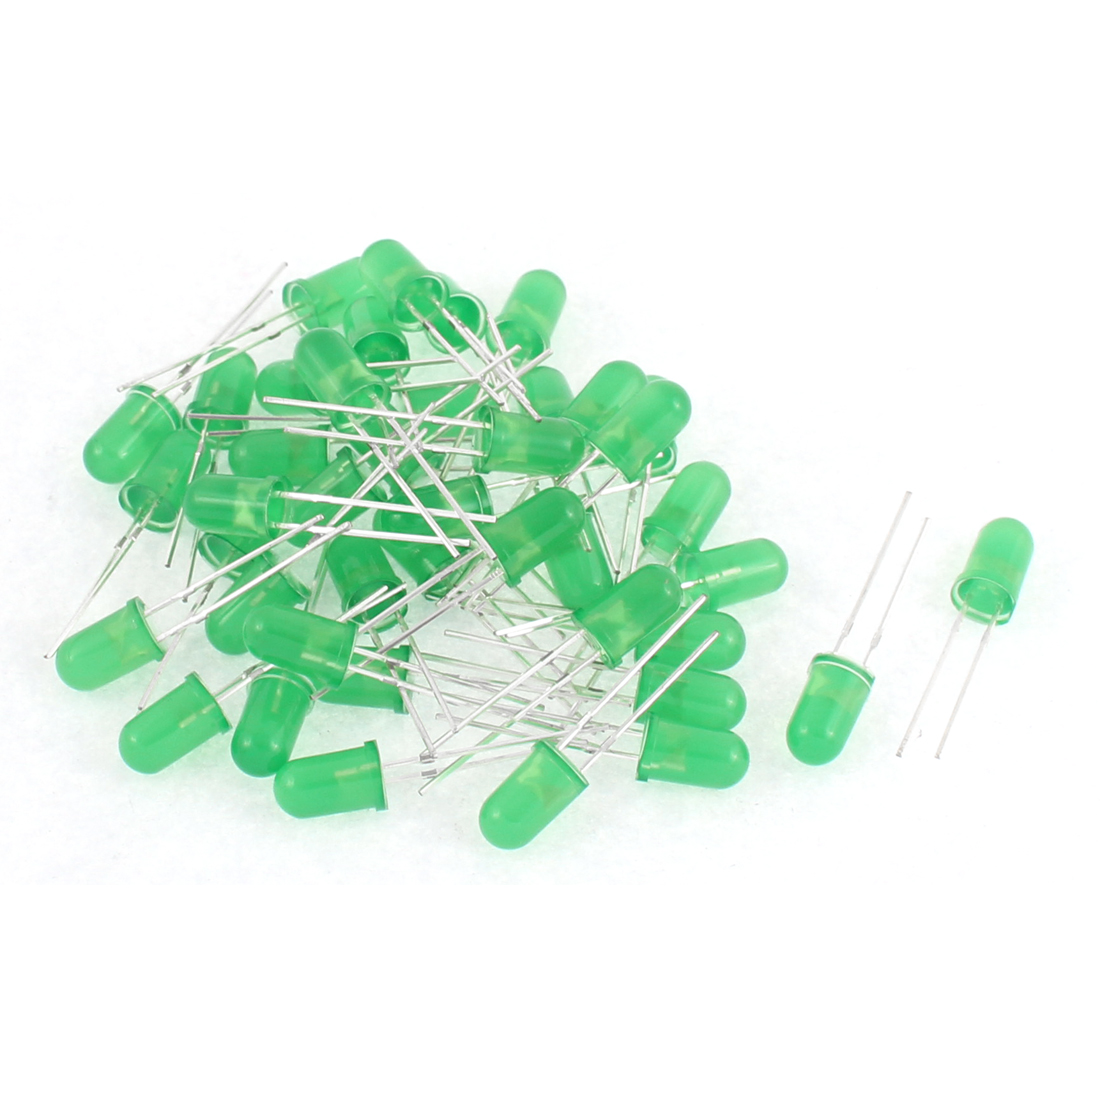 40pcs 5mm Green Color Round LED Light Emitting Diodes Diffused Component